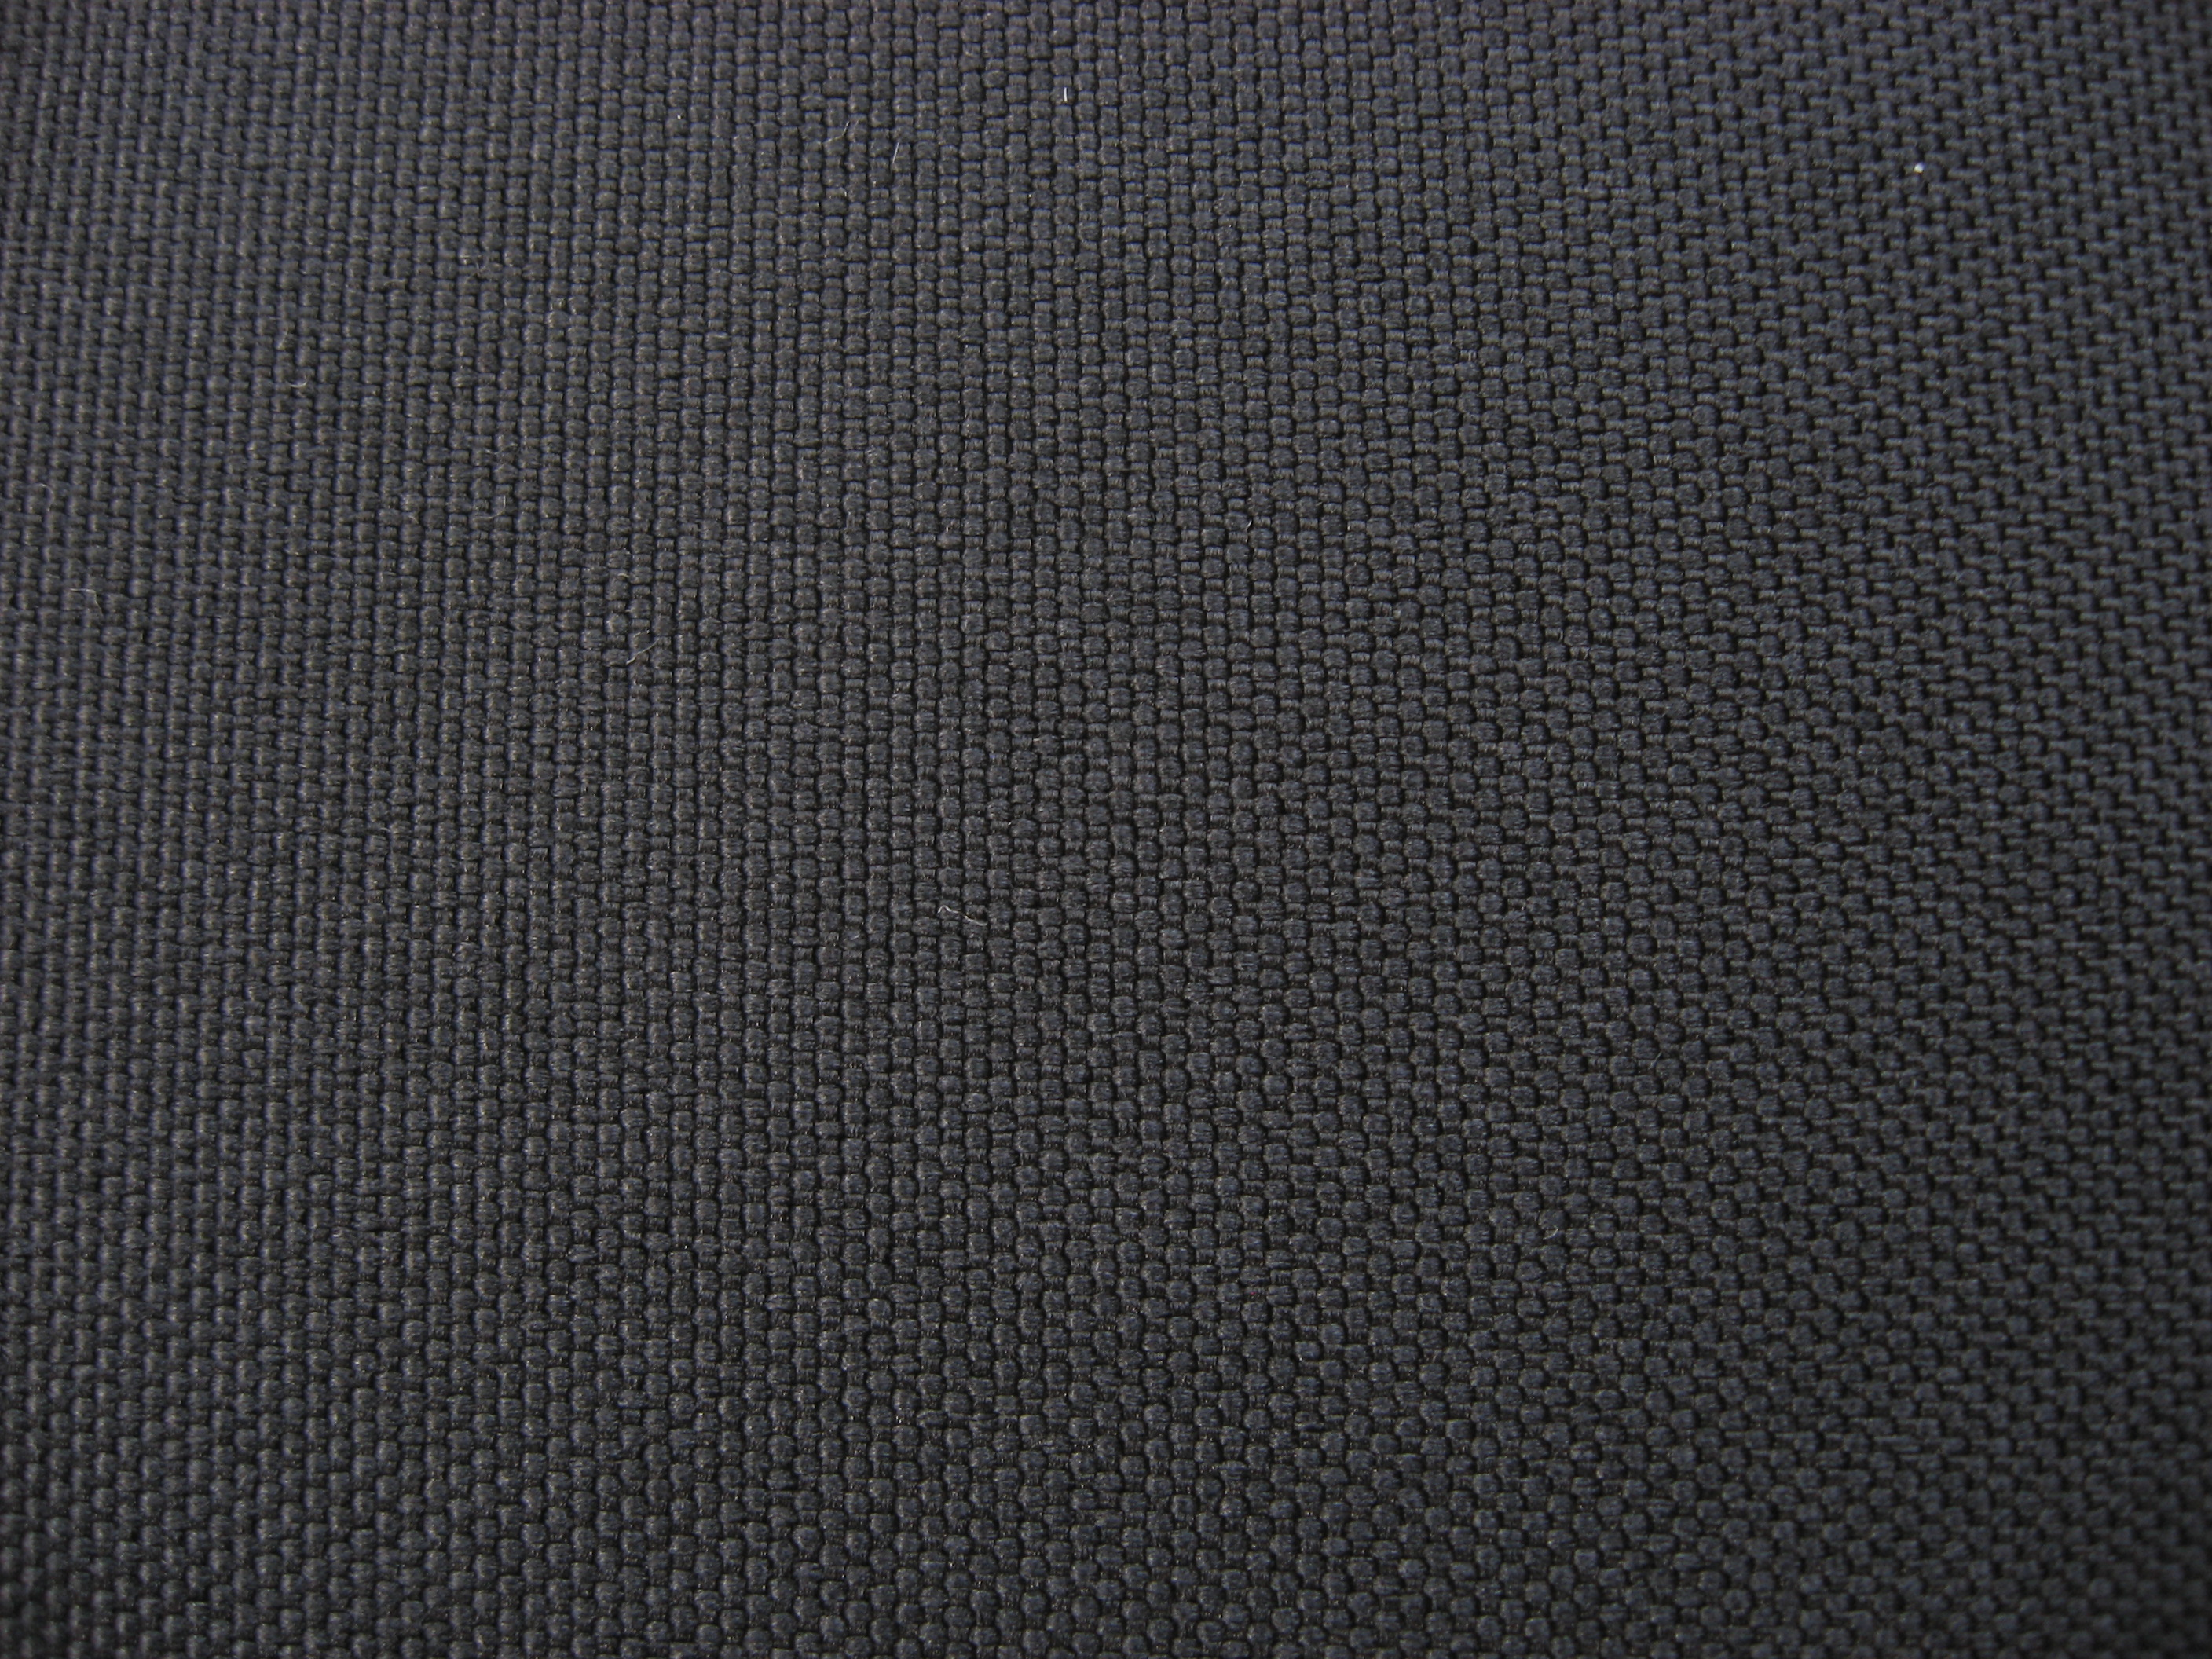 What Material Is Used For Car Covers